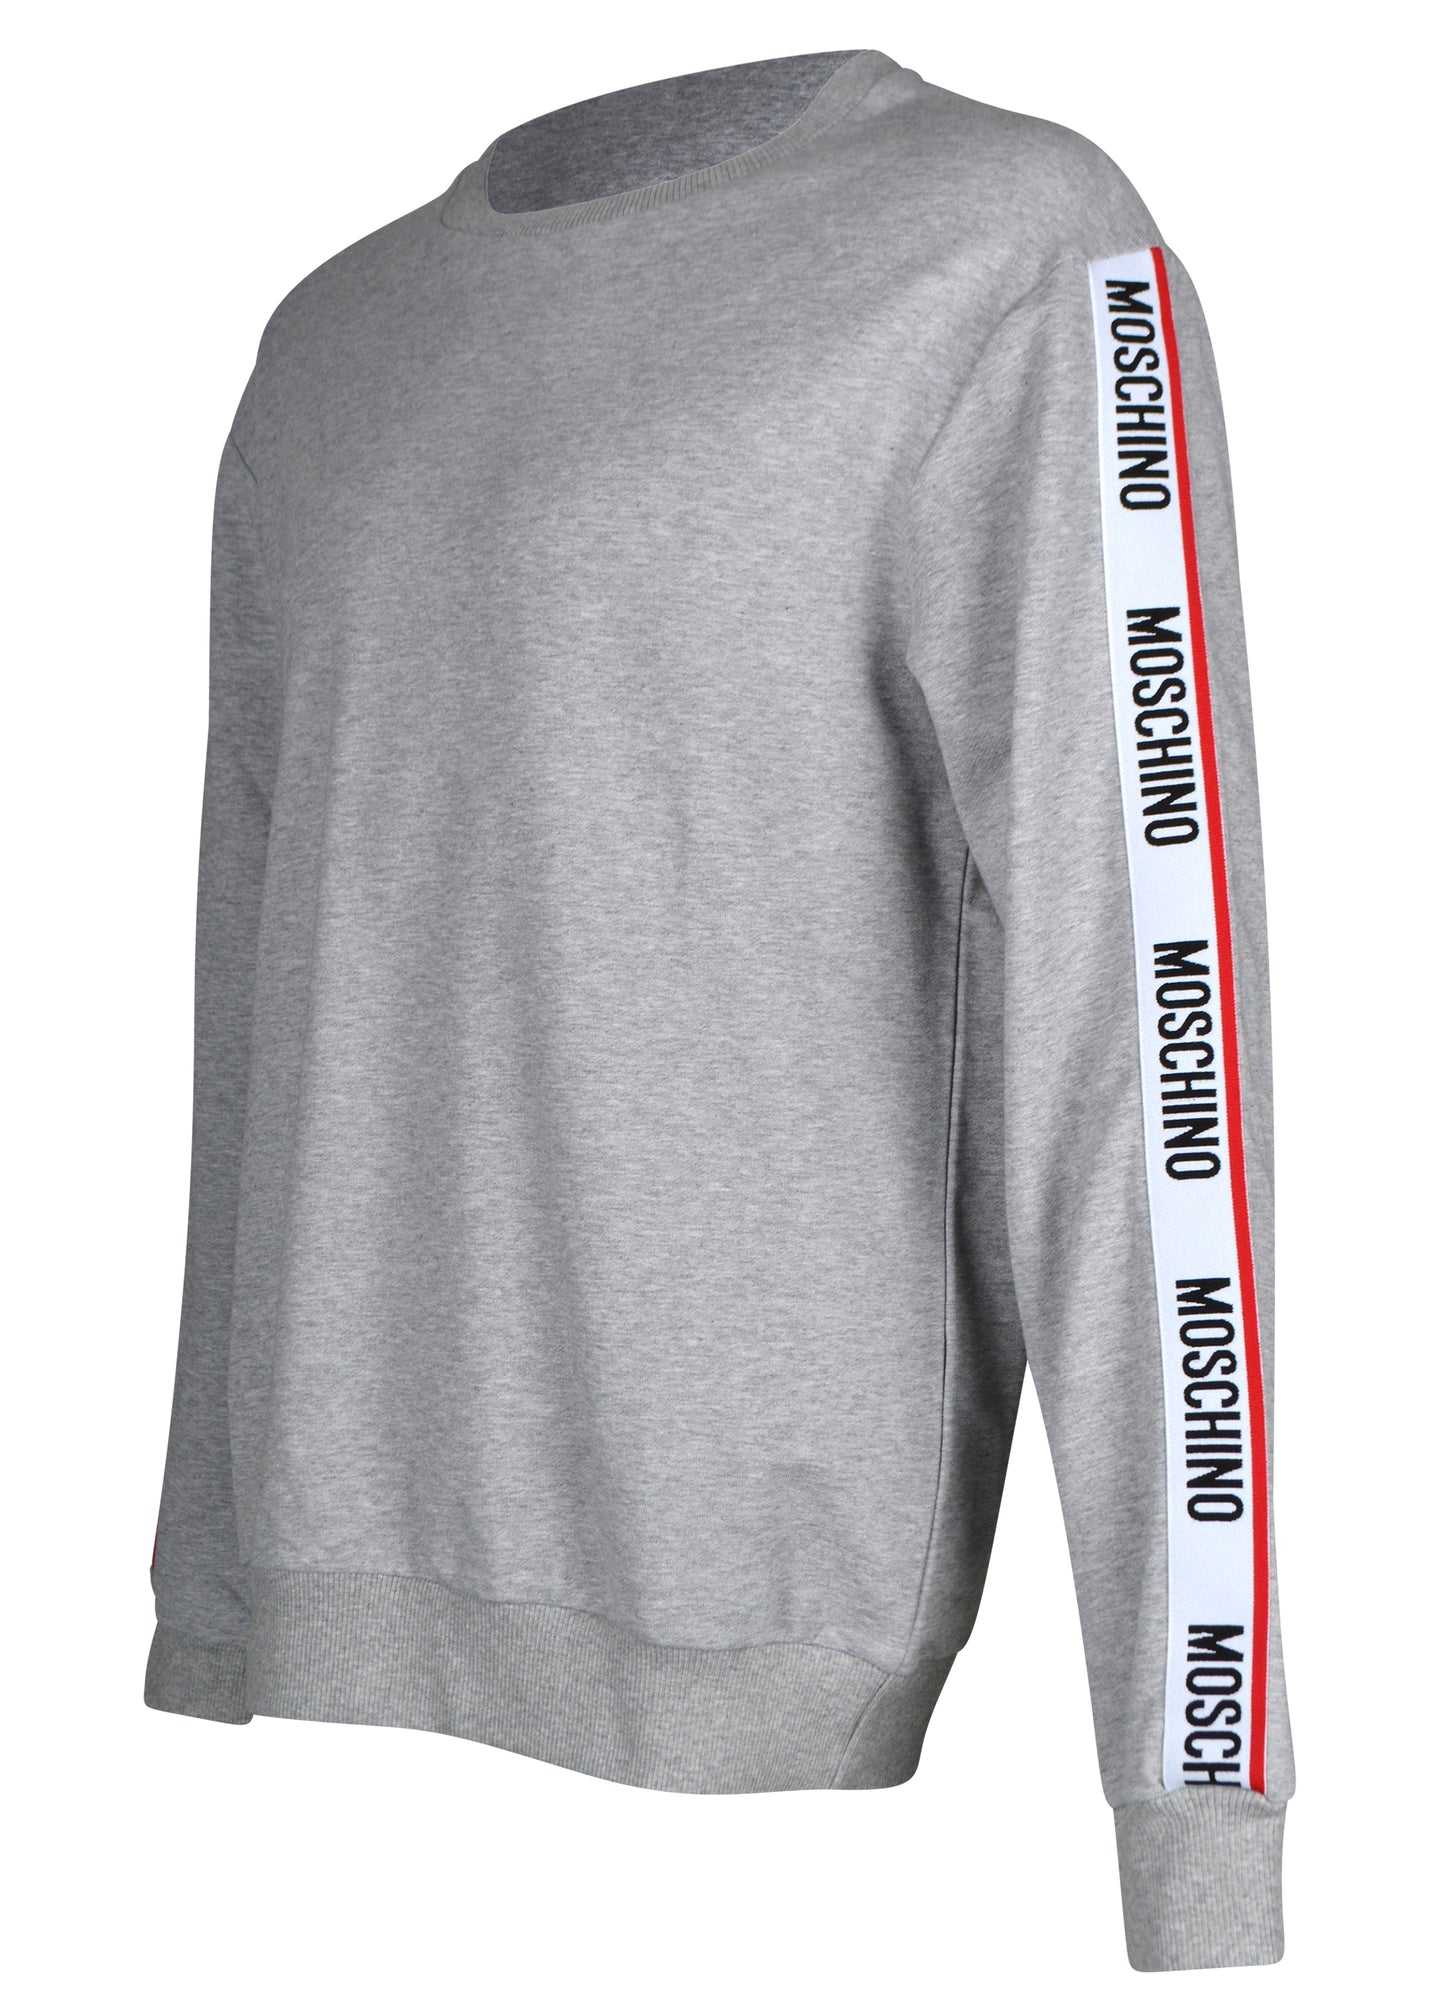 Moschino - Crewneck Tape Sleeve Detail Sweatshirt - 100078 - A1706 8106 - Grey